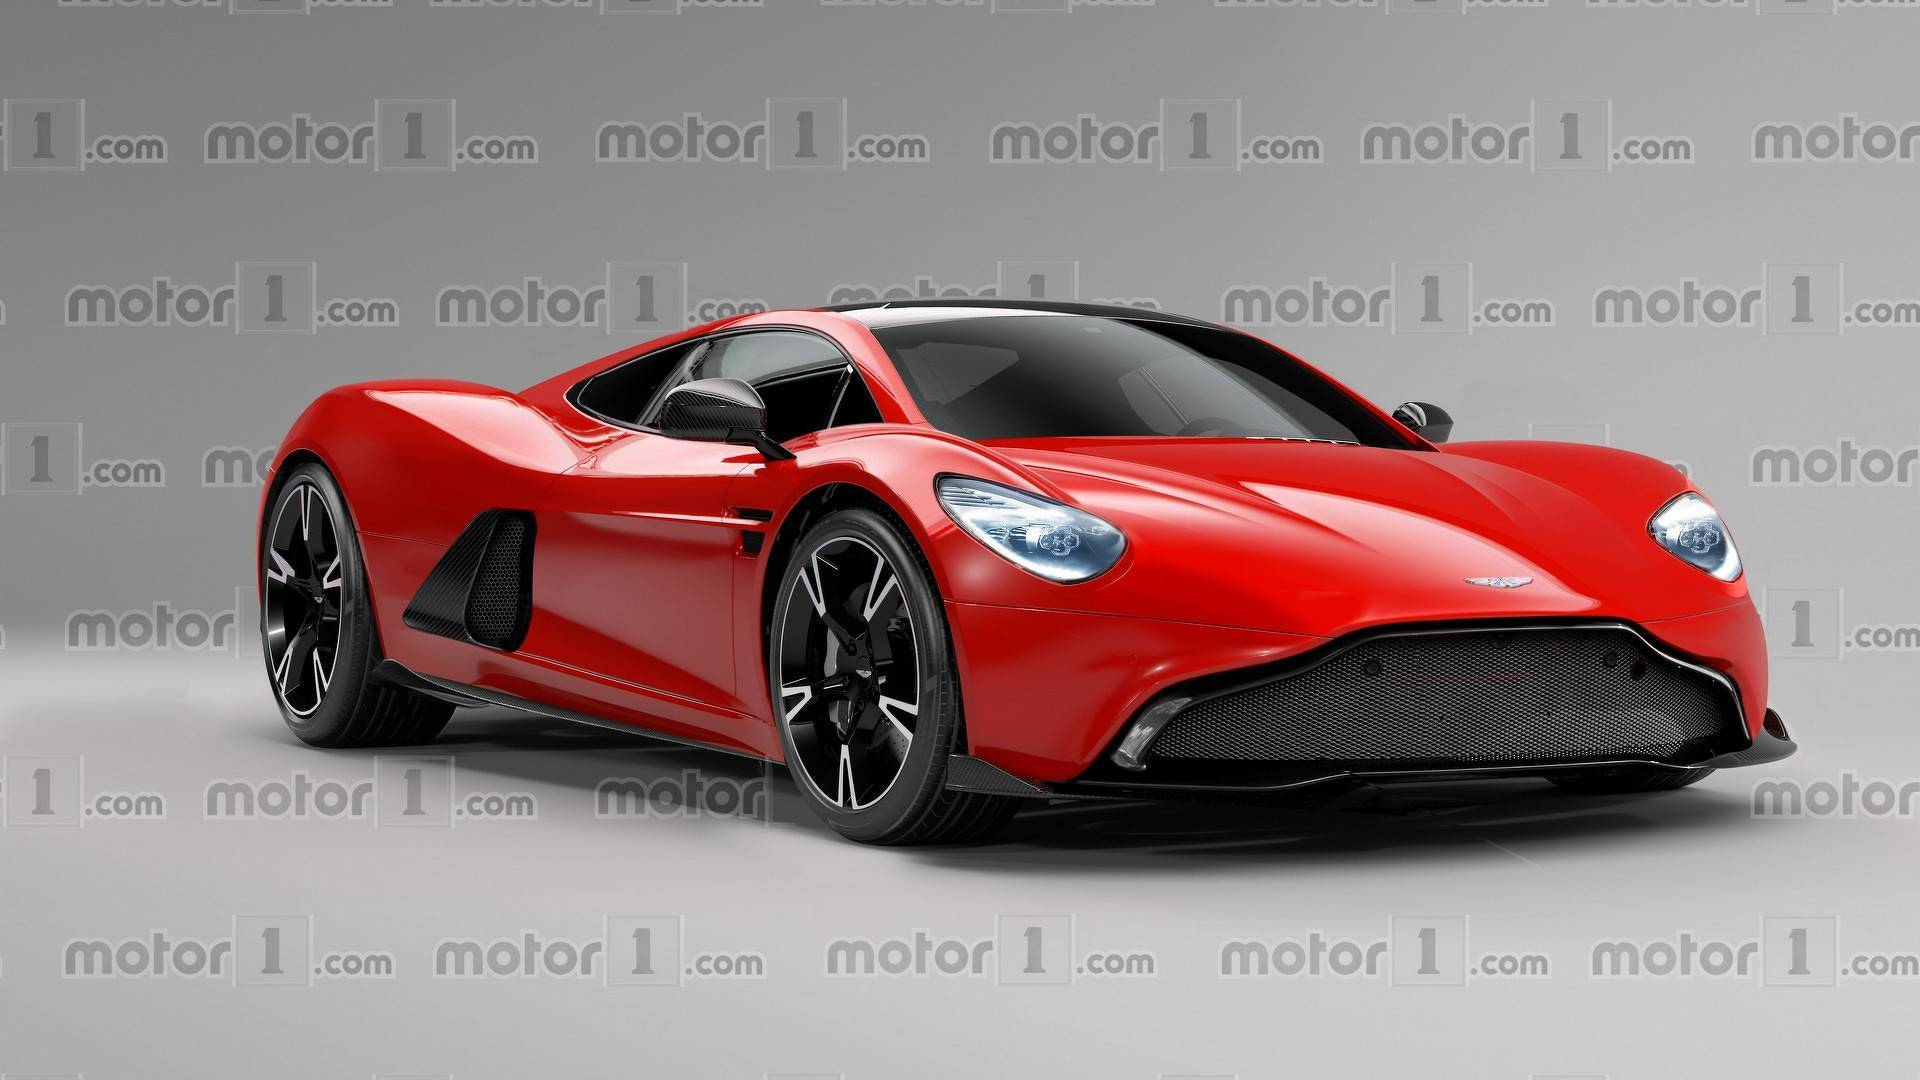 Aston Martin To Revive Vanquish Name For MidEngined Supercar - Aston martin sports car